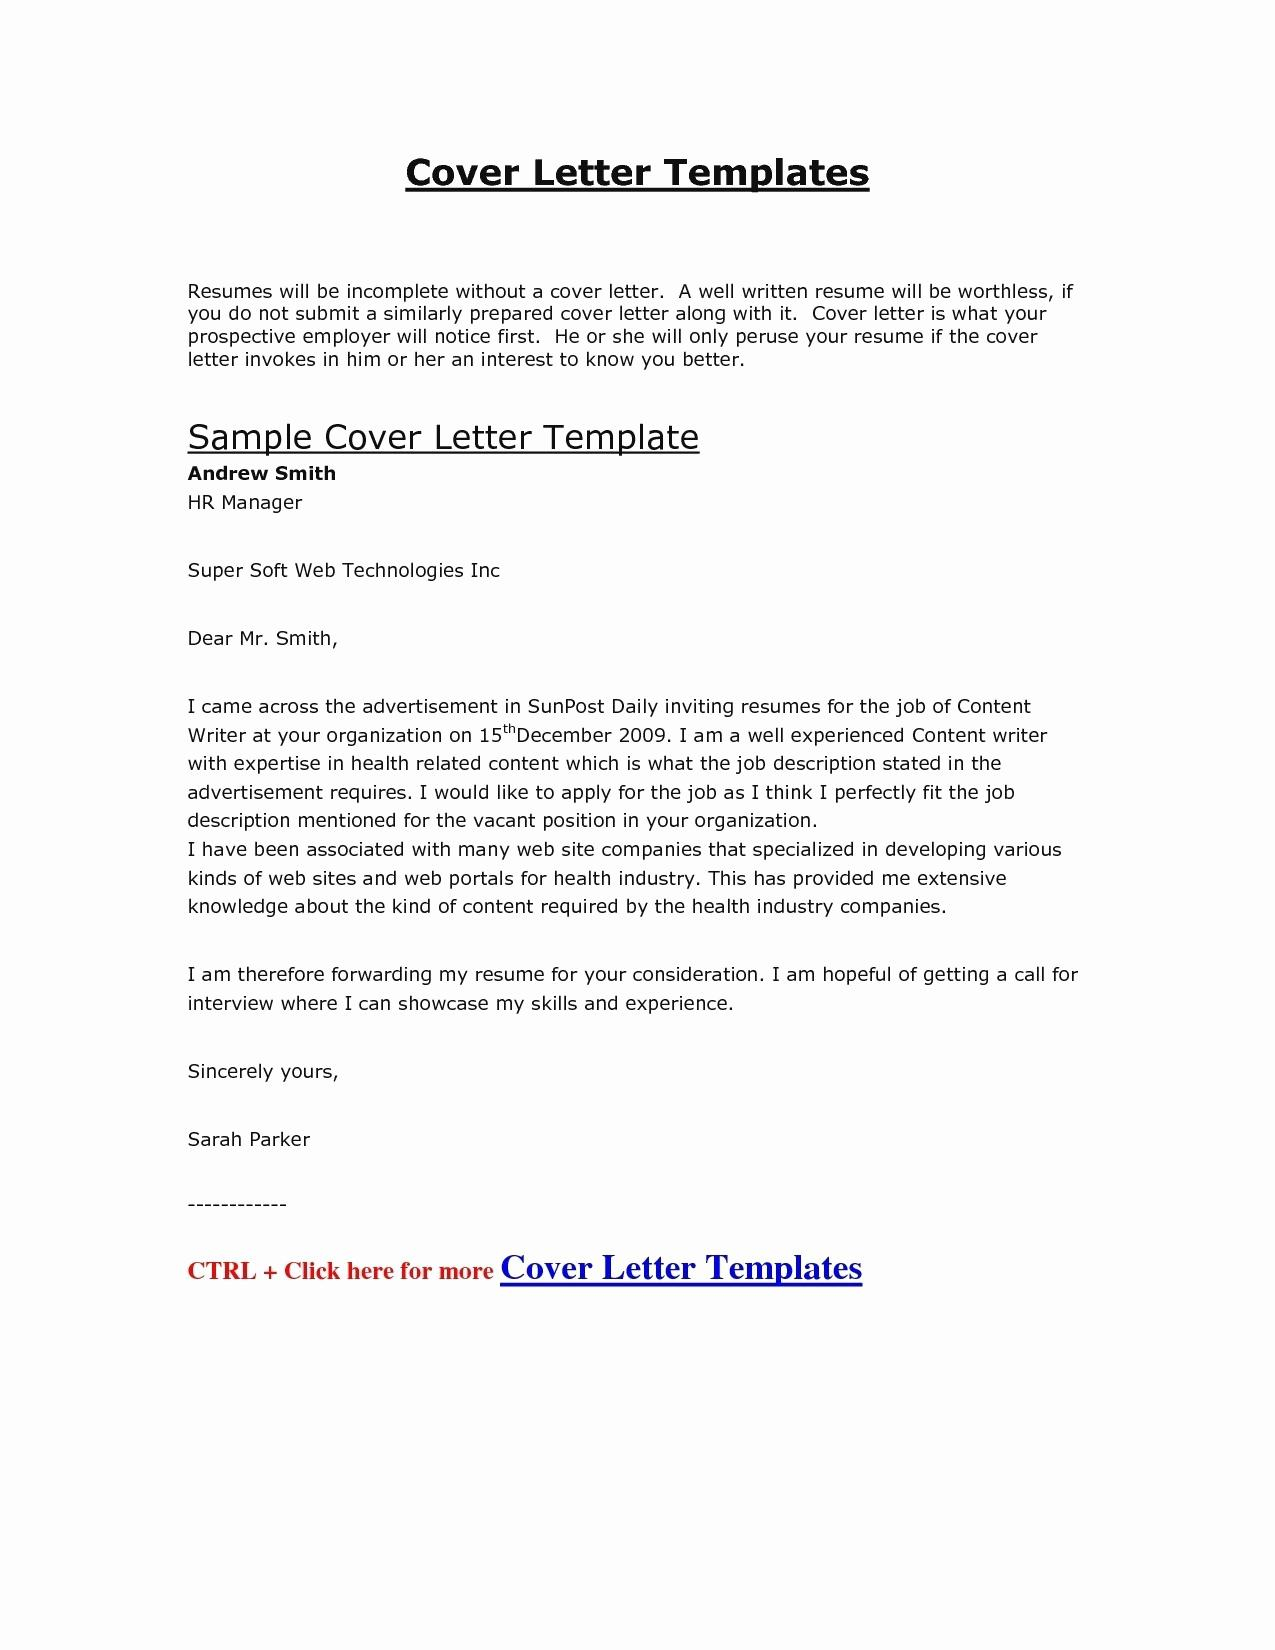 Hr Letter Template - Resume Templates Poppycockreviews